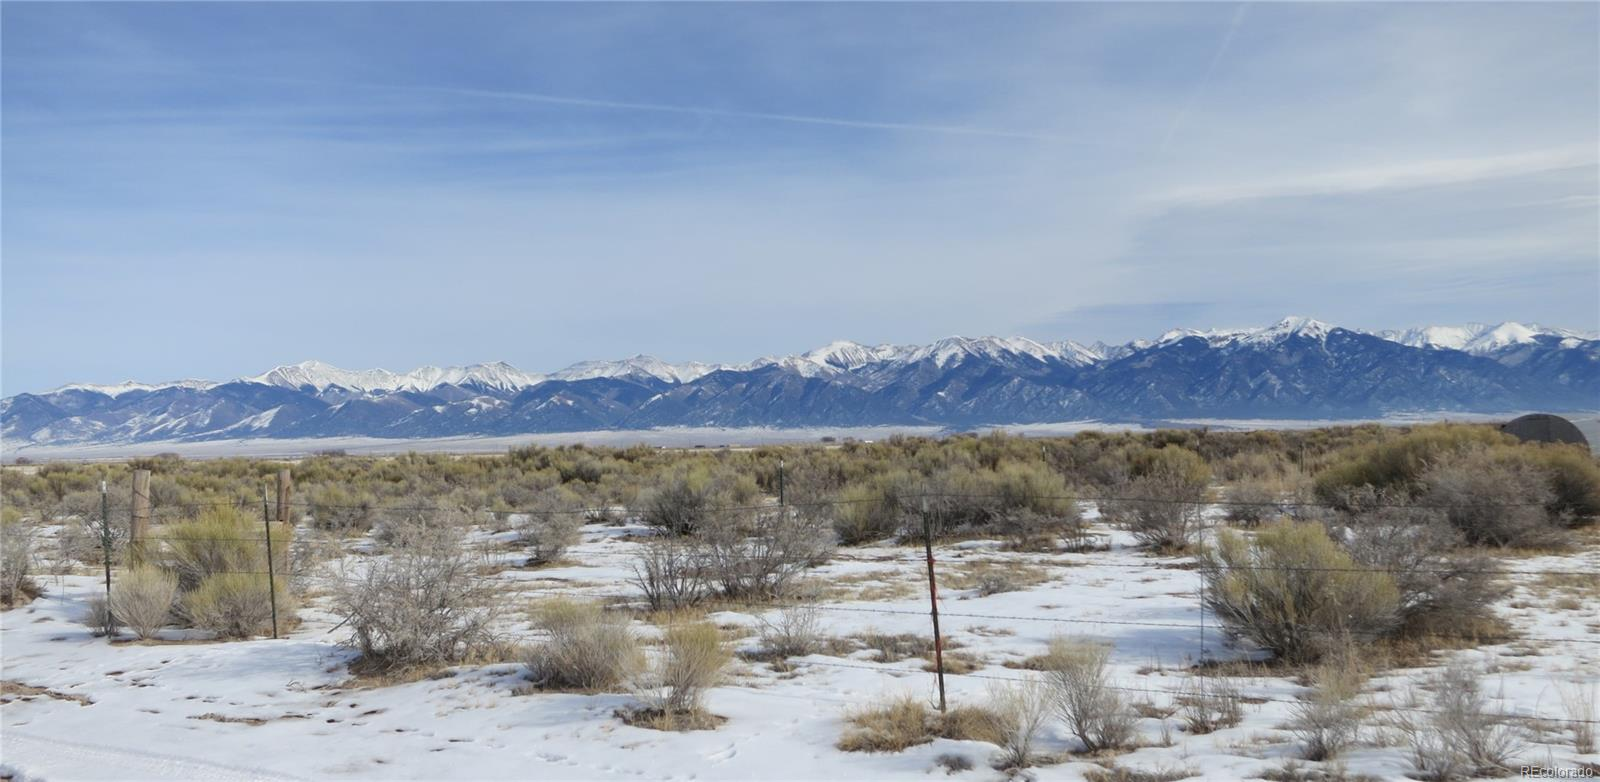 NW1/4 SW1/4 36-44-9 CR U60, Moffat, CO 81143 - Moffat, CO real estate listing